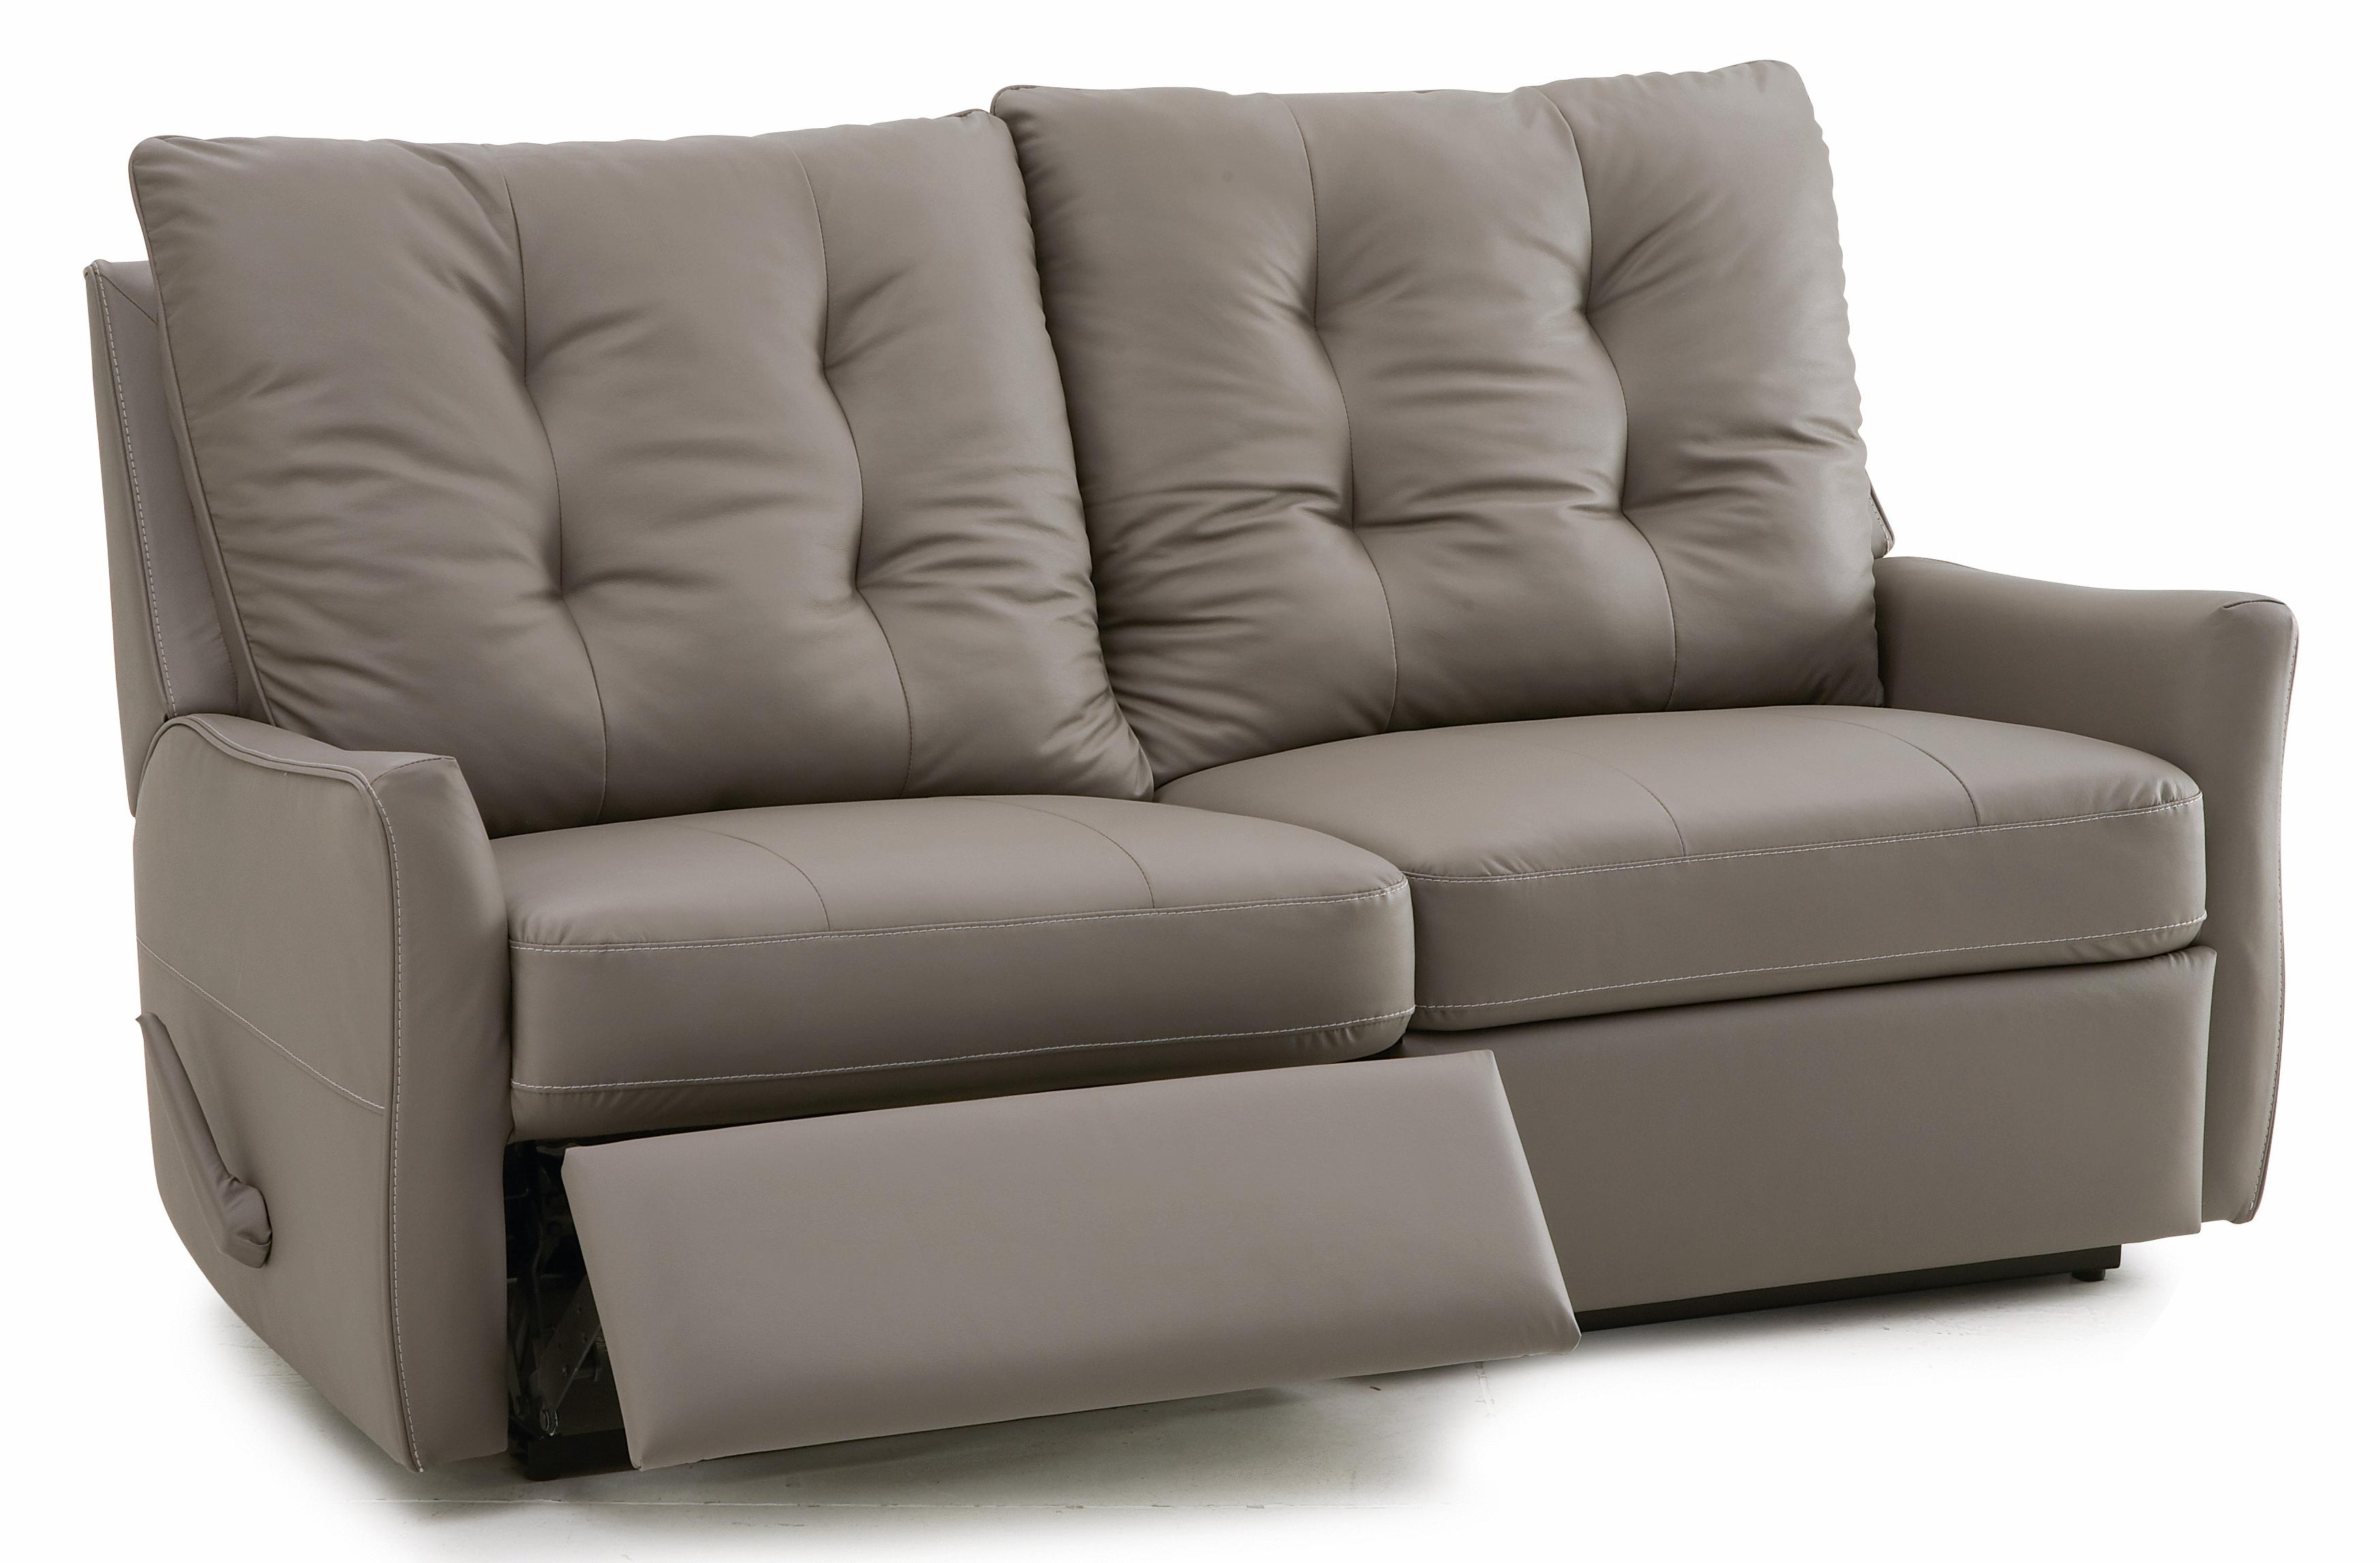 palliser ryan contemporary loveseat recliner with button tufted